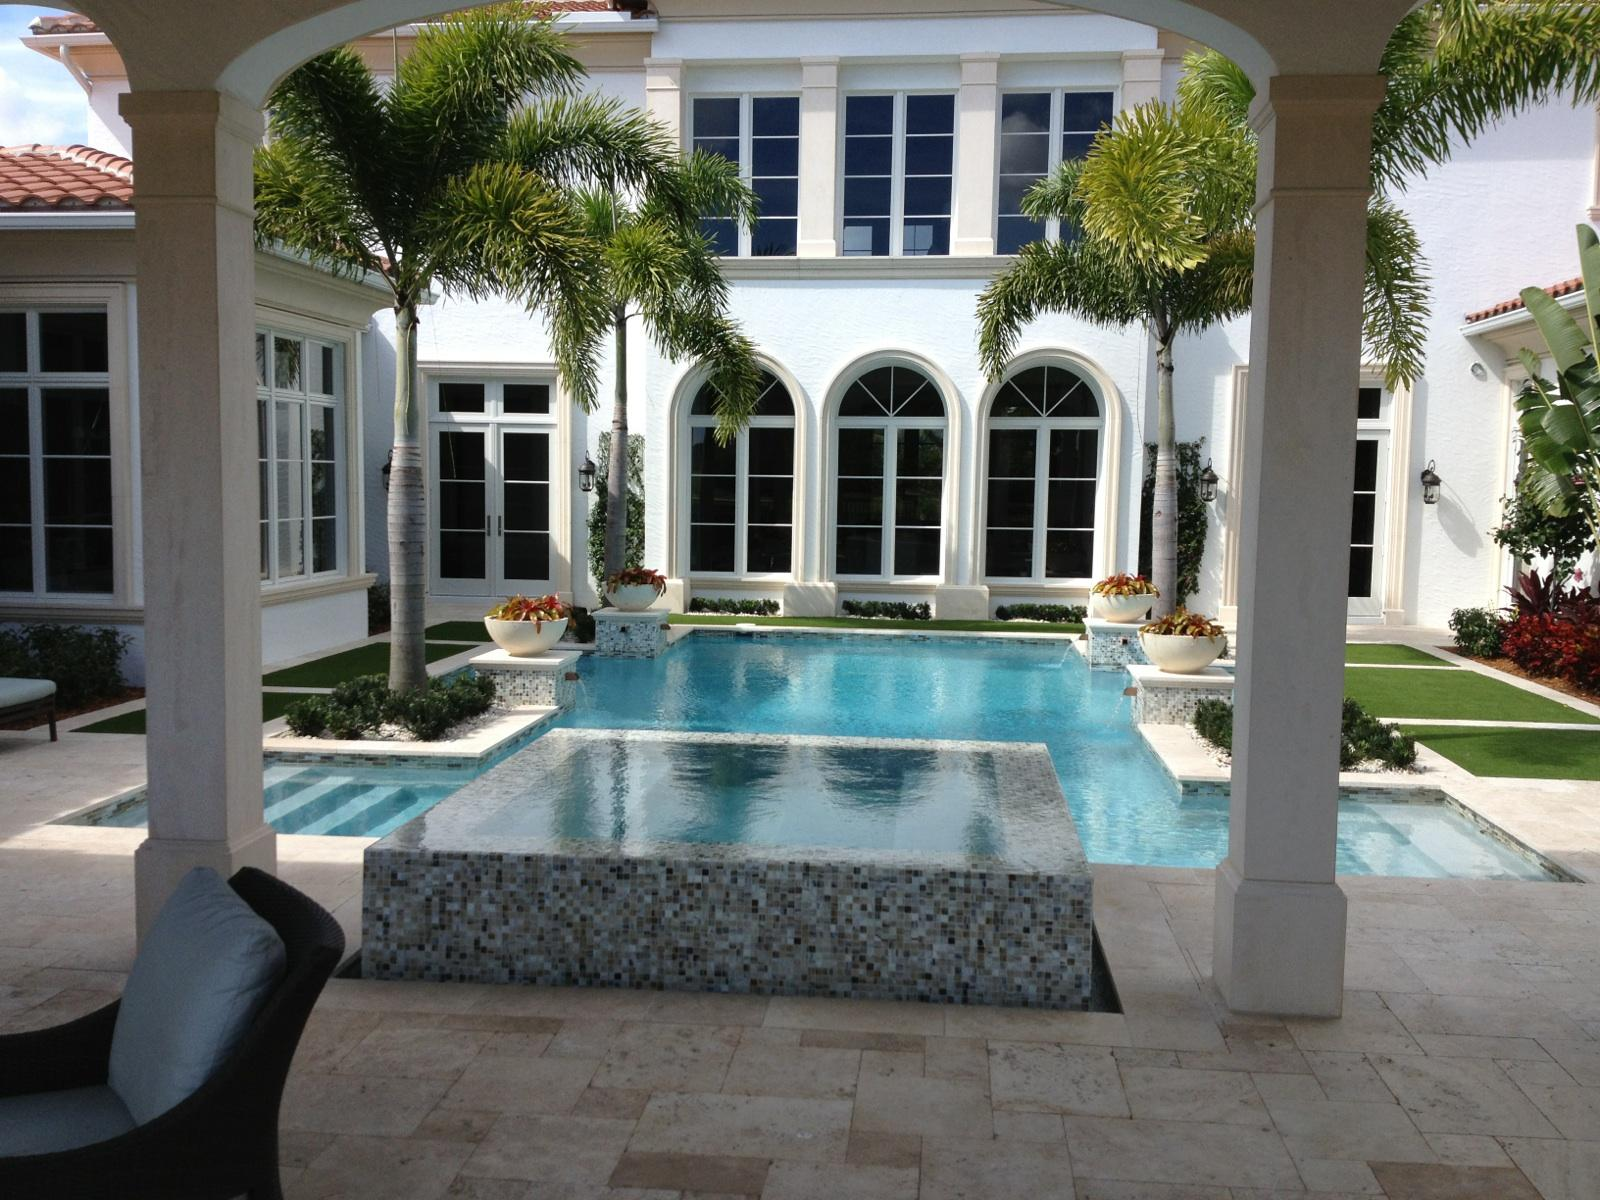 rhr pools of jupiter fl beautiful pool with raised spa and light mosaic tile